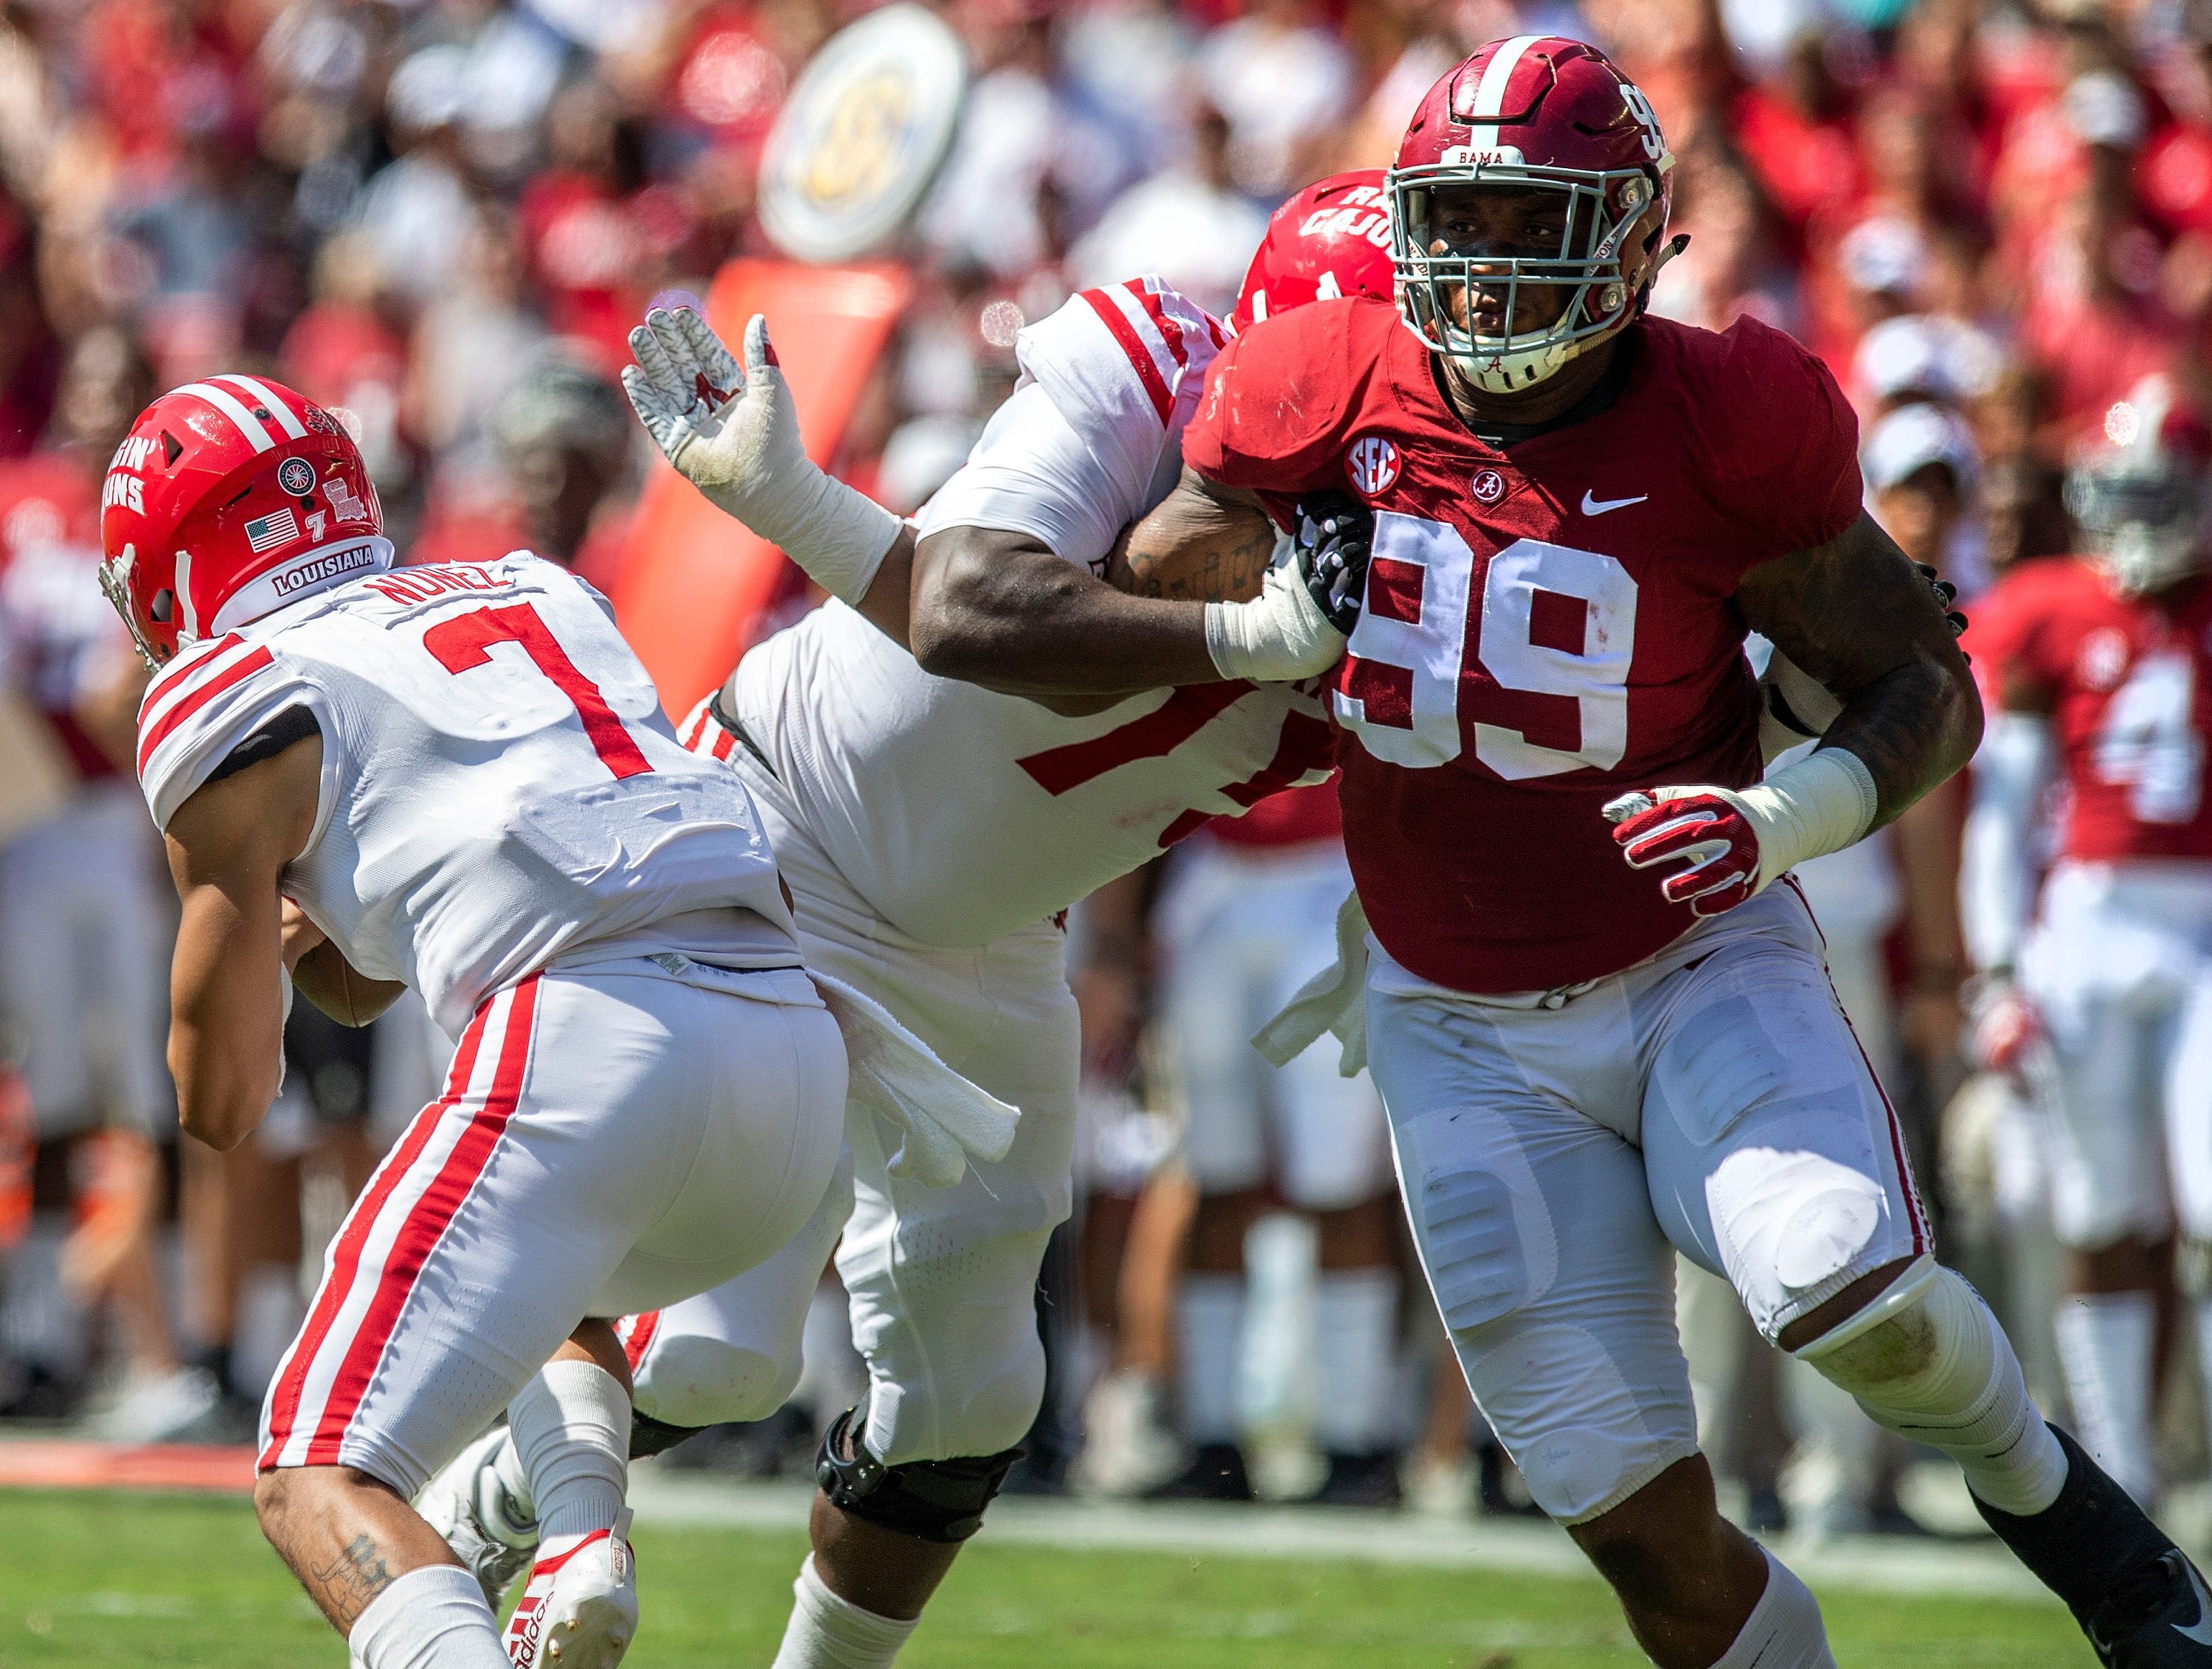 Alabama defensive lineman Raekwon Davis (99) pursues Louisiana quarterback Andre Nunez (7) In first half action at Bryant-Denny Stadium in Tuscaloosa, Ala., on Saturday September 29, 2018.